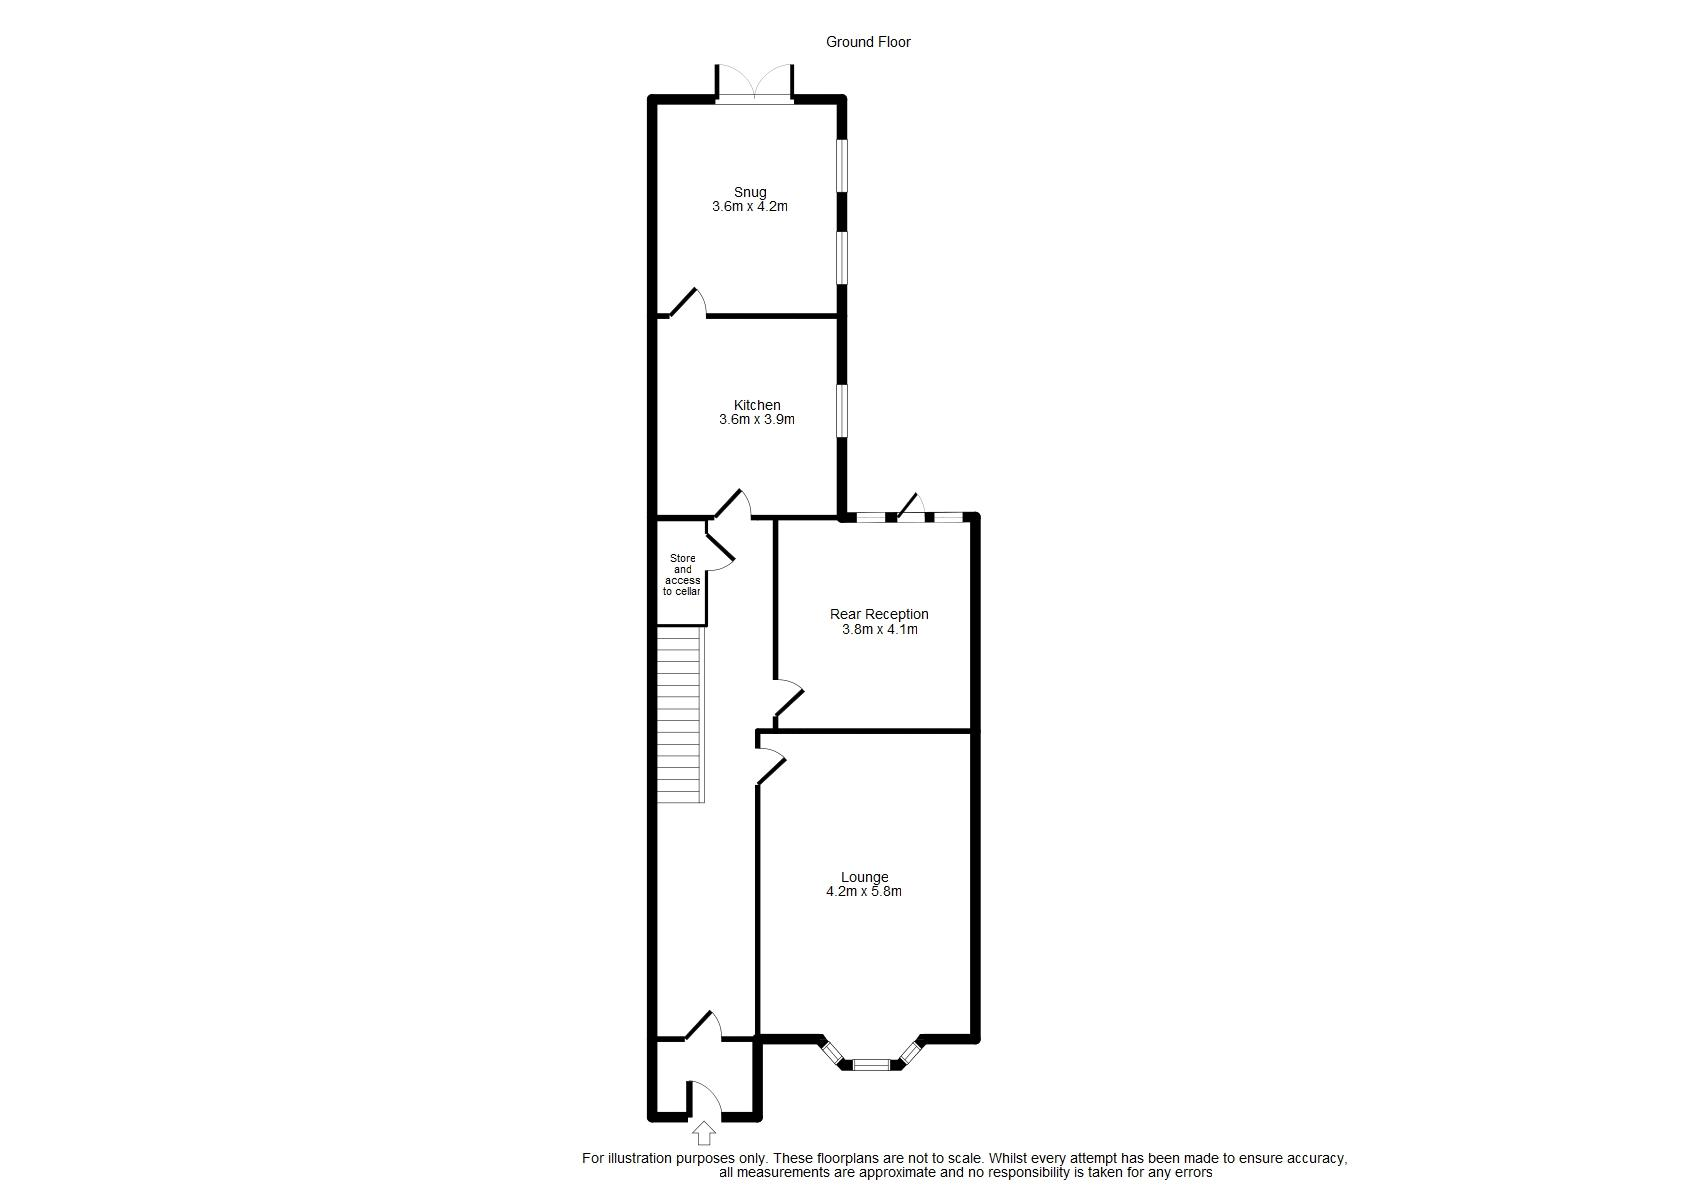 Ground Floor Floorplan